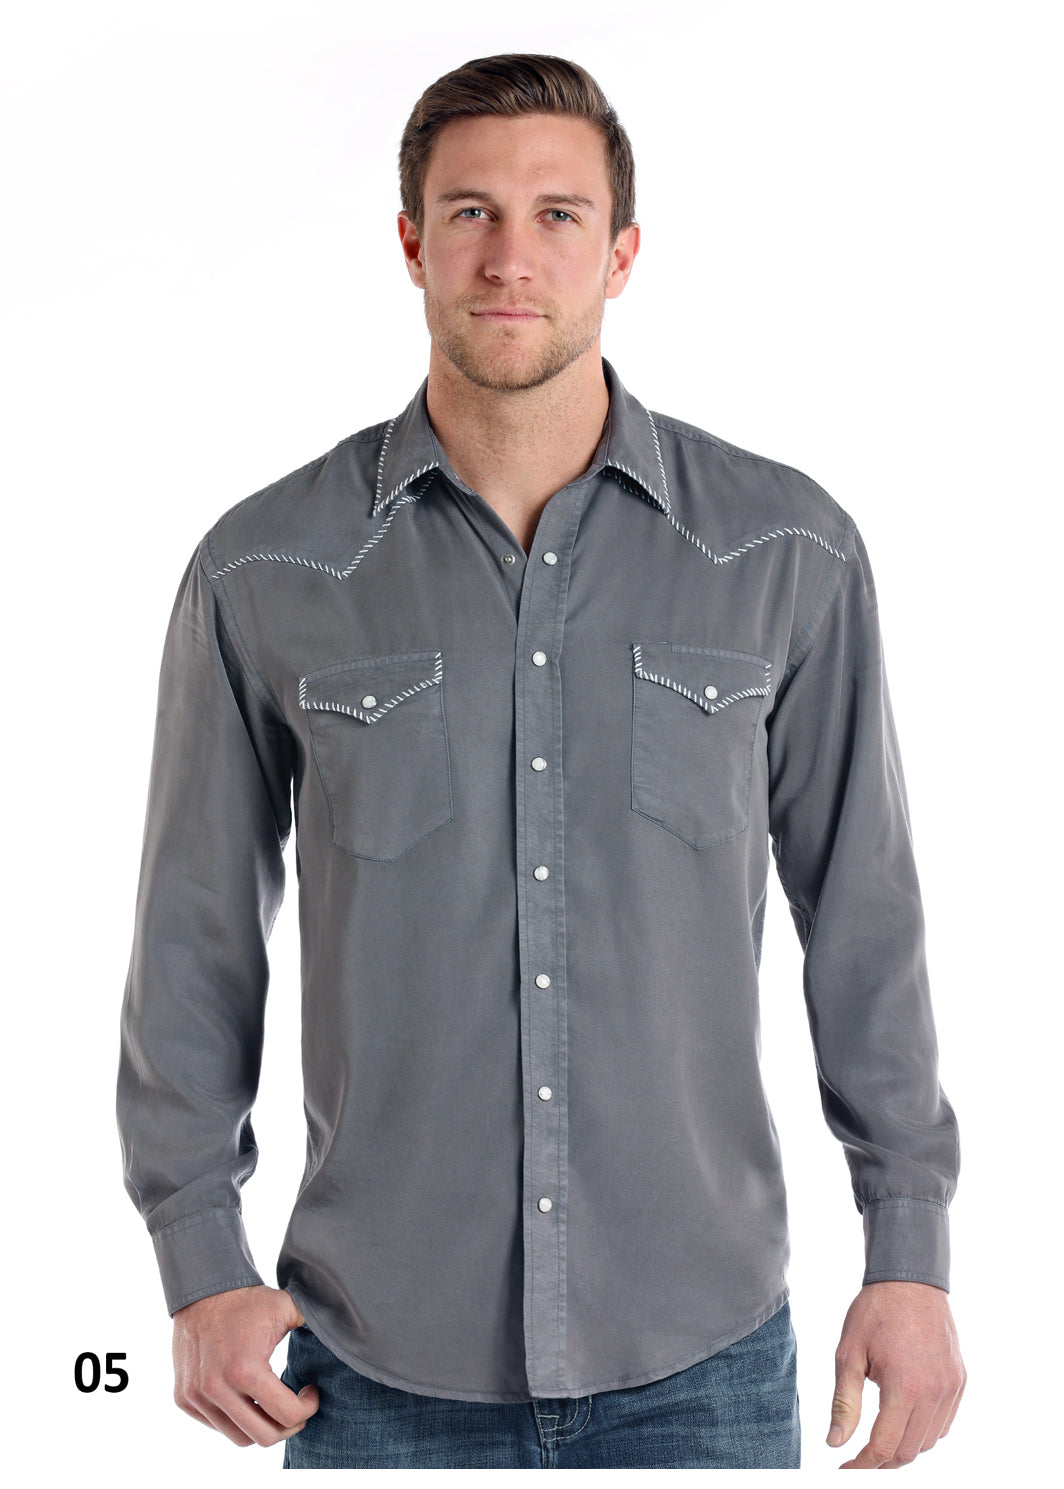 Panhandle Long Sleeve Men's Pearl Snap Shirt